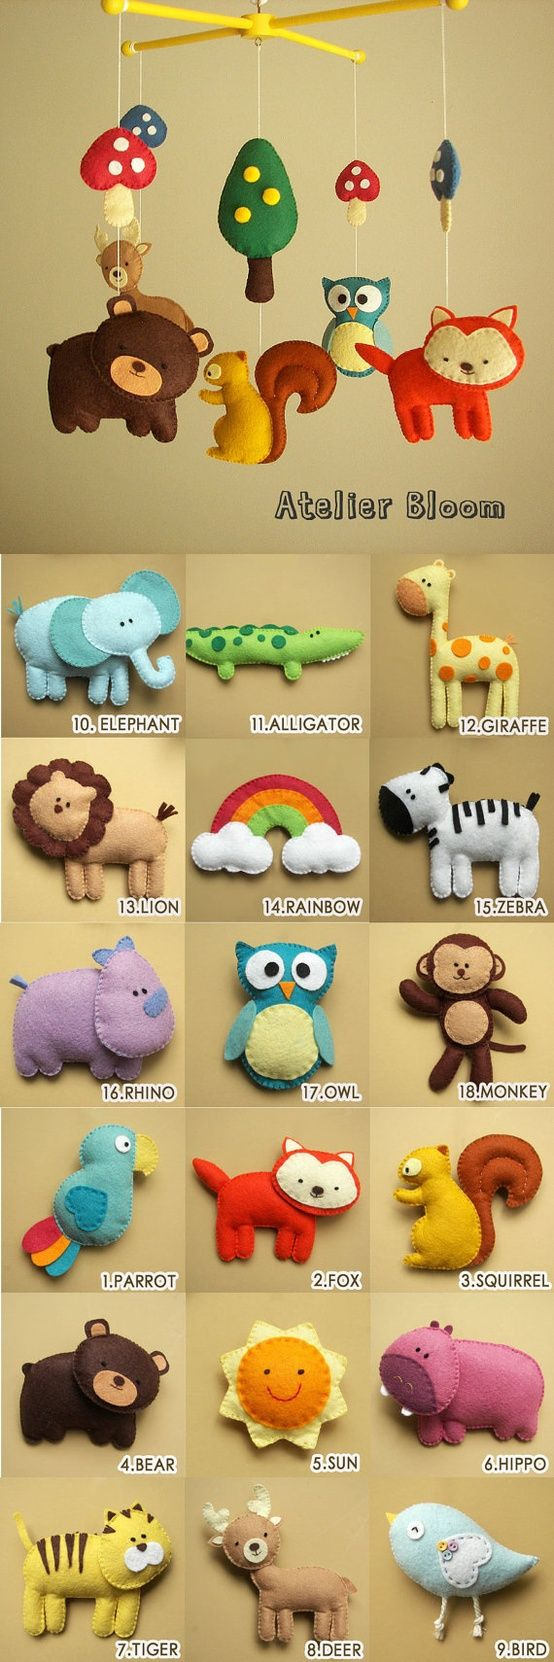 Felt Animal Templates | visit huaban com